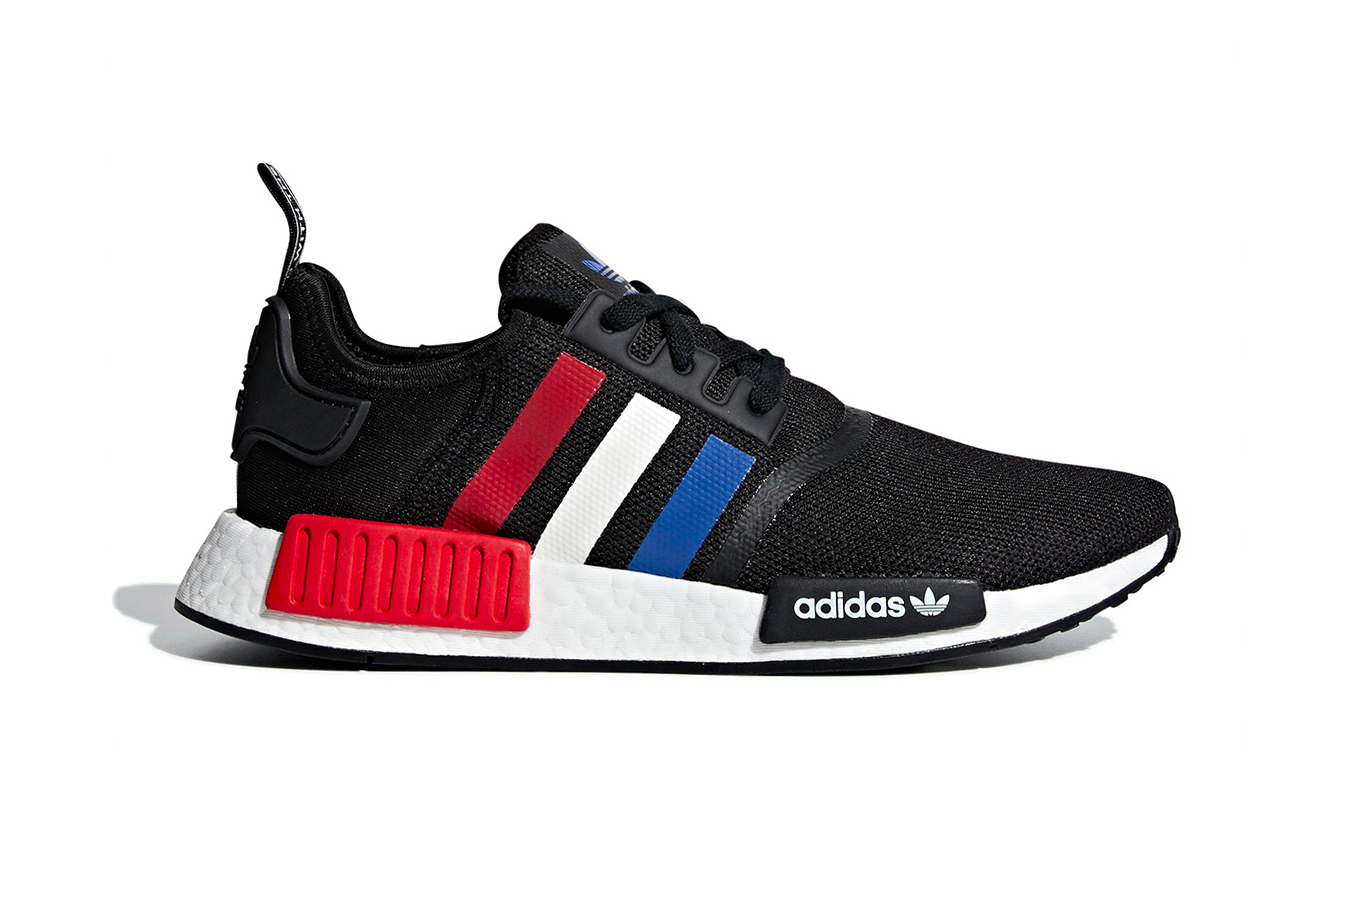 adidas NMD R1 black red white blue release info sneakers